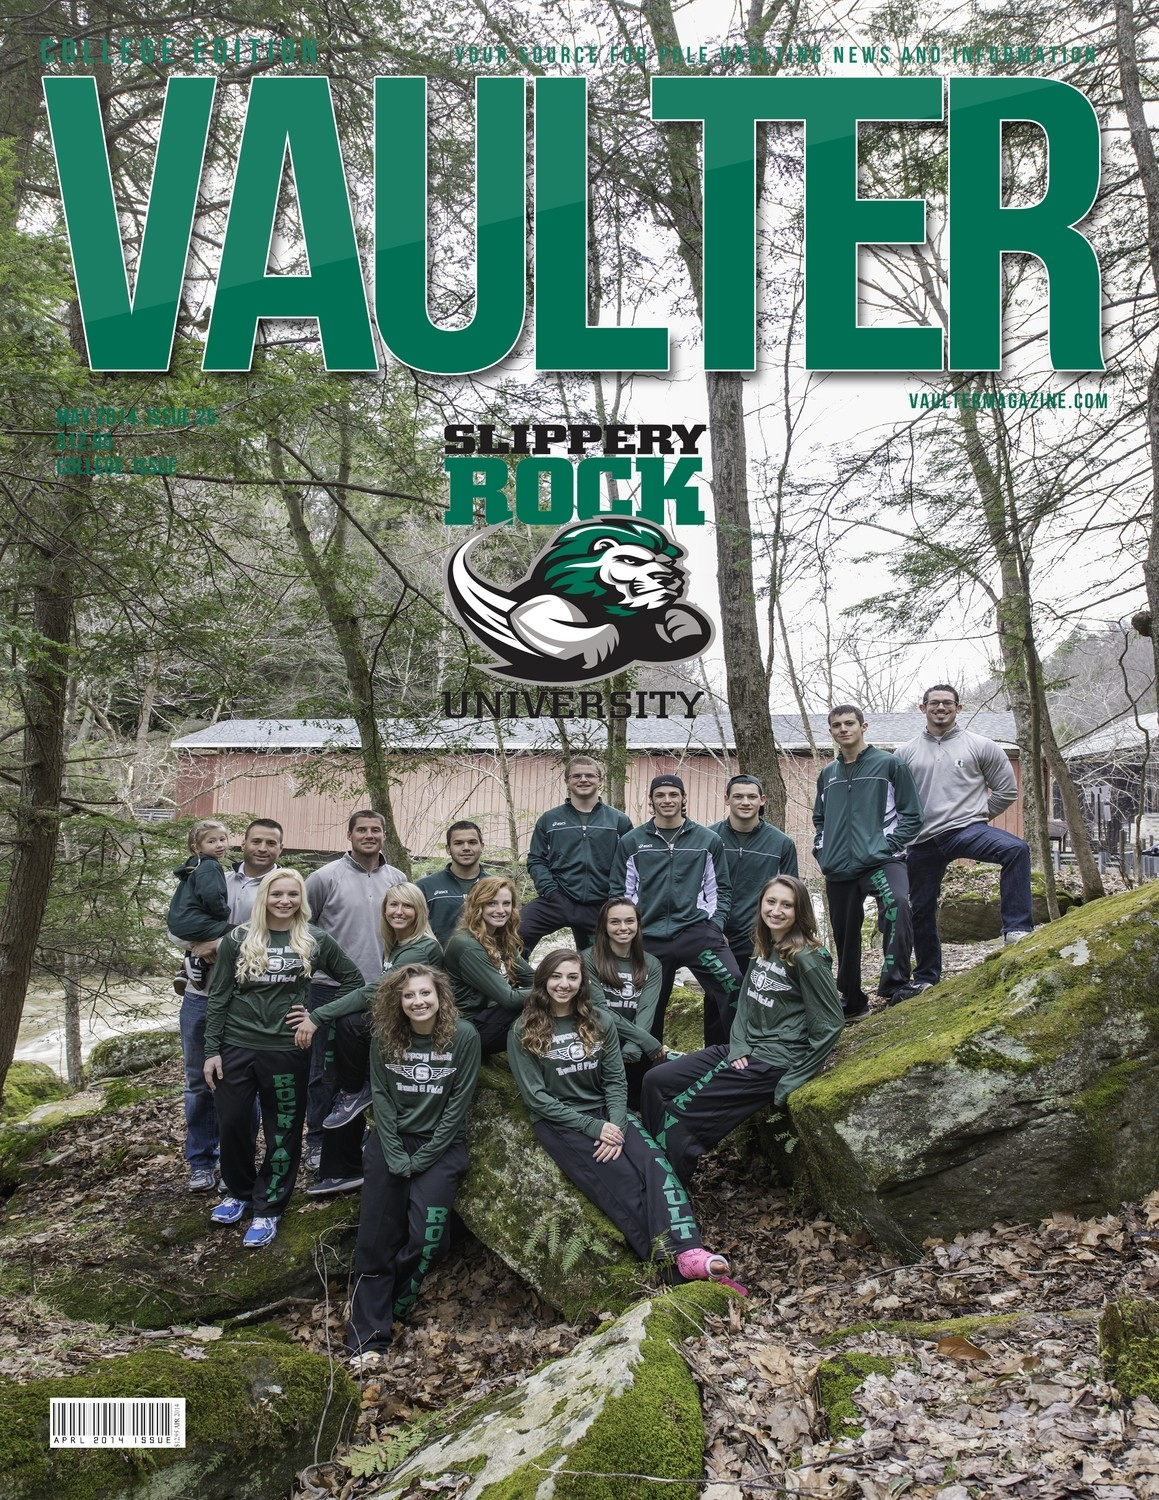 Buy the May Slippery Rock University Magazine - Get Poster for $20 - That's $5 Off